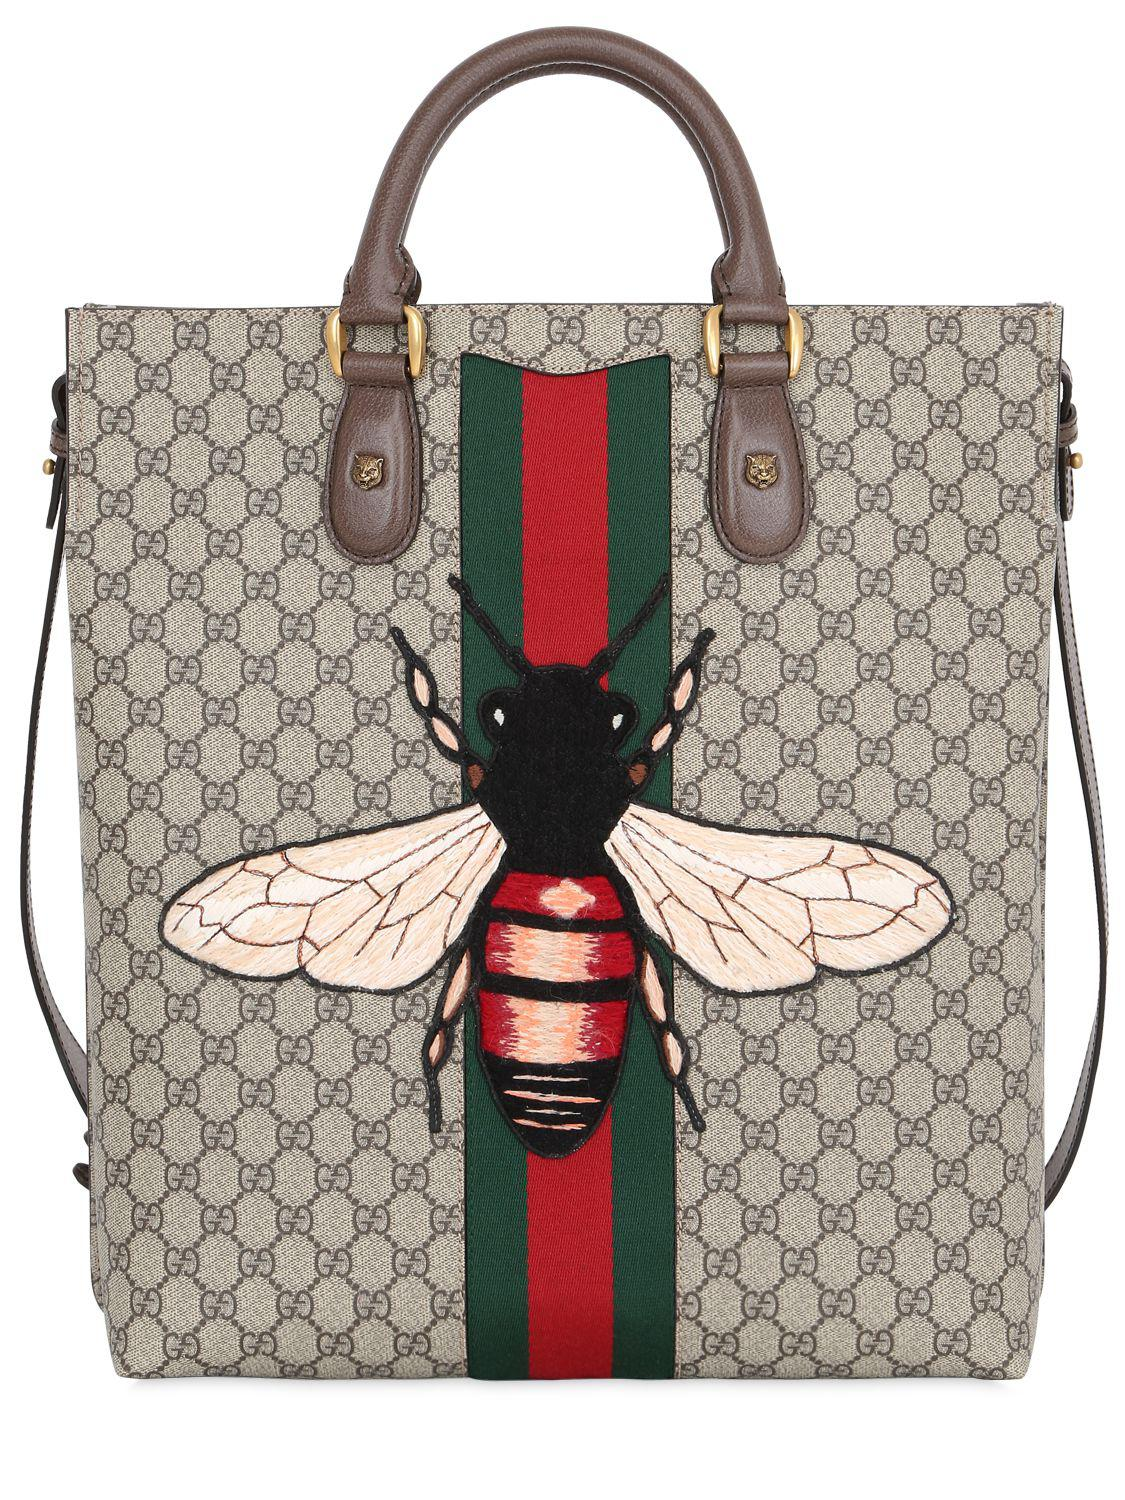 9dedff7947668 Lyst - Gucci Bee Patch Gg Supreme Tote Bag in Natural